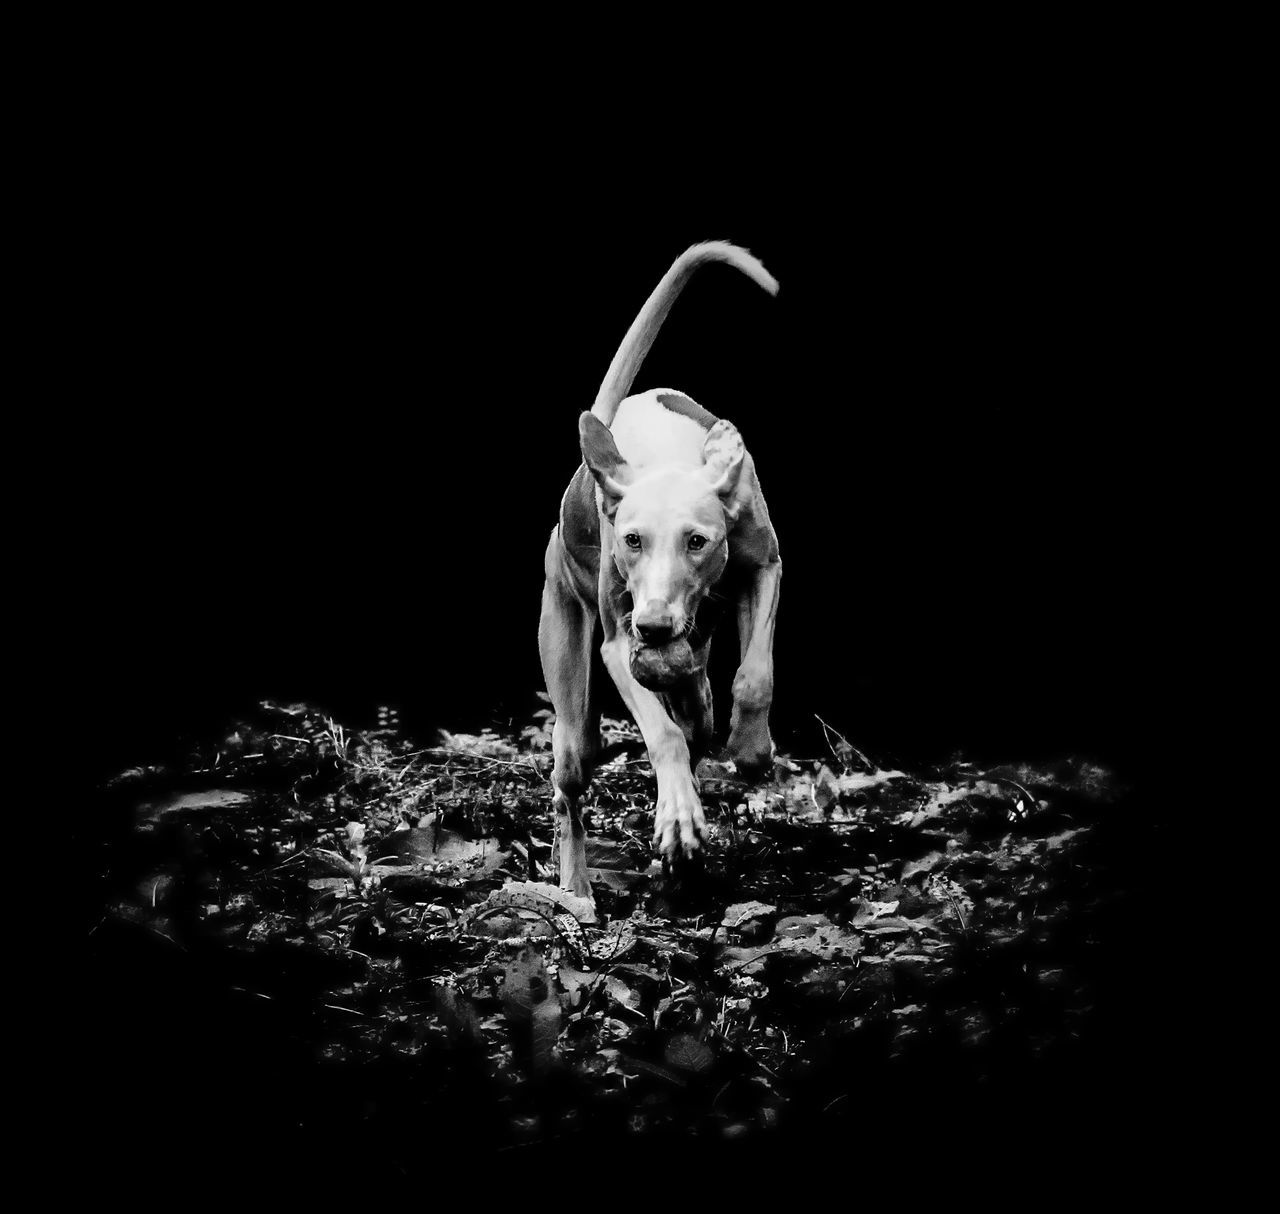 Animal Themes Black Background Dog Dog Love Ibizan Hound Mammal No People One Animal Pet Podenco Ibicenco